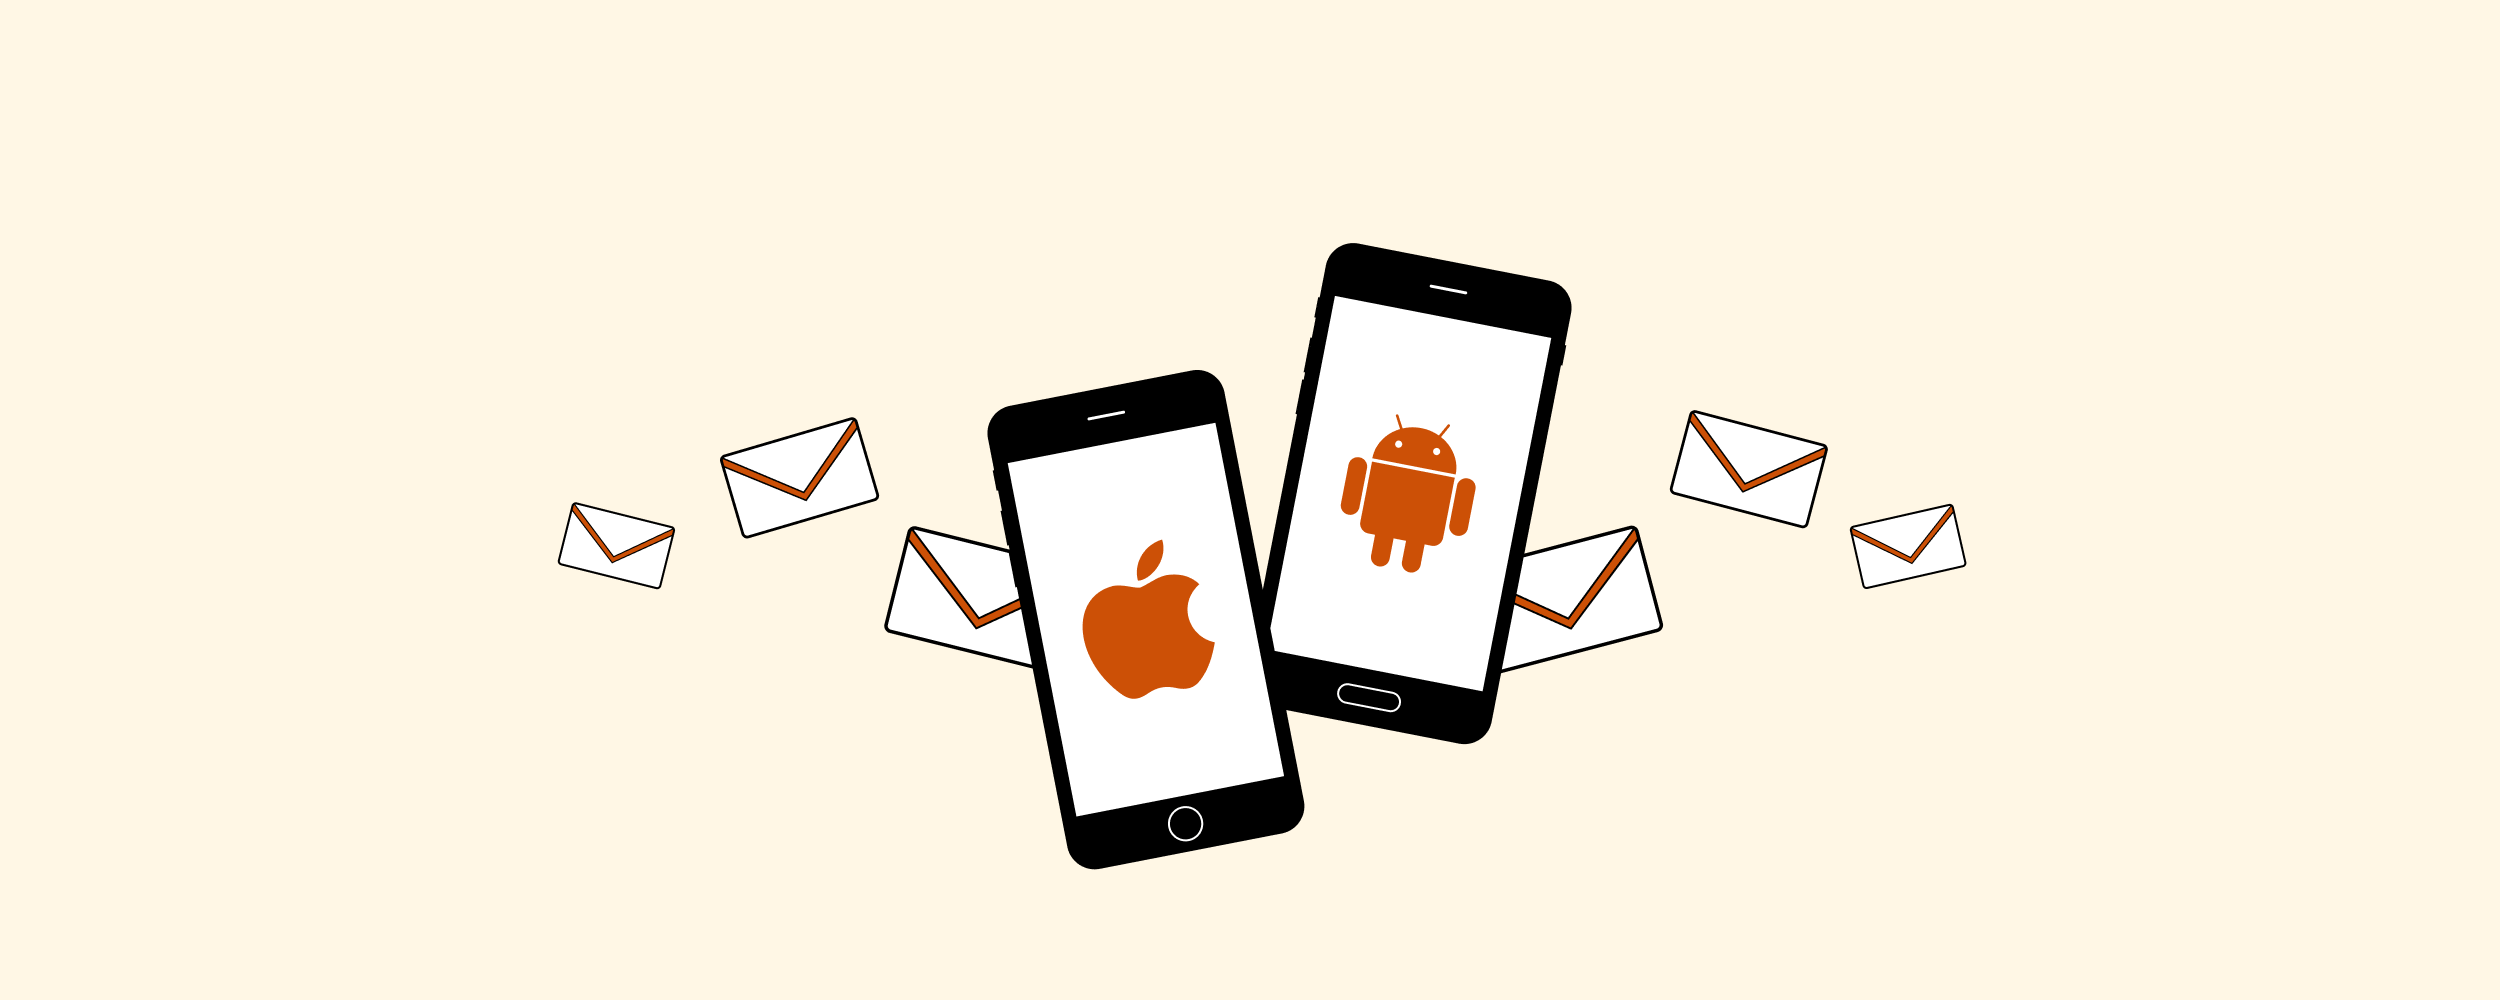 How to set up an email account on your Android or iPhone